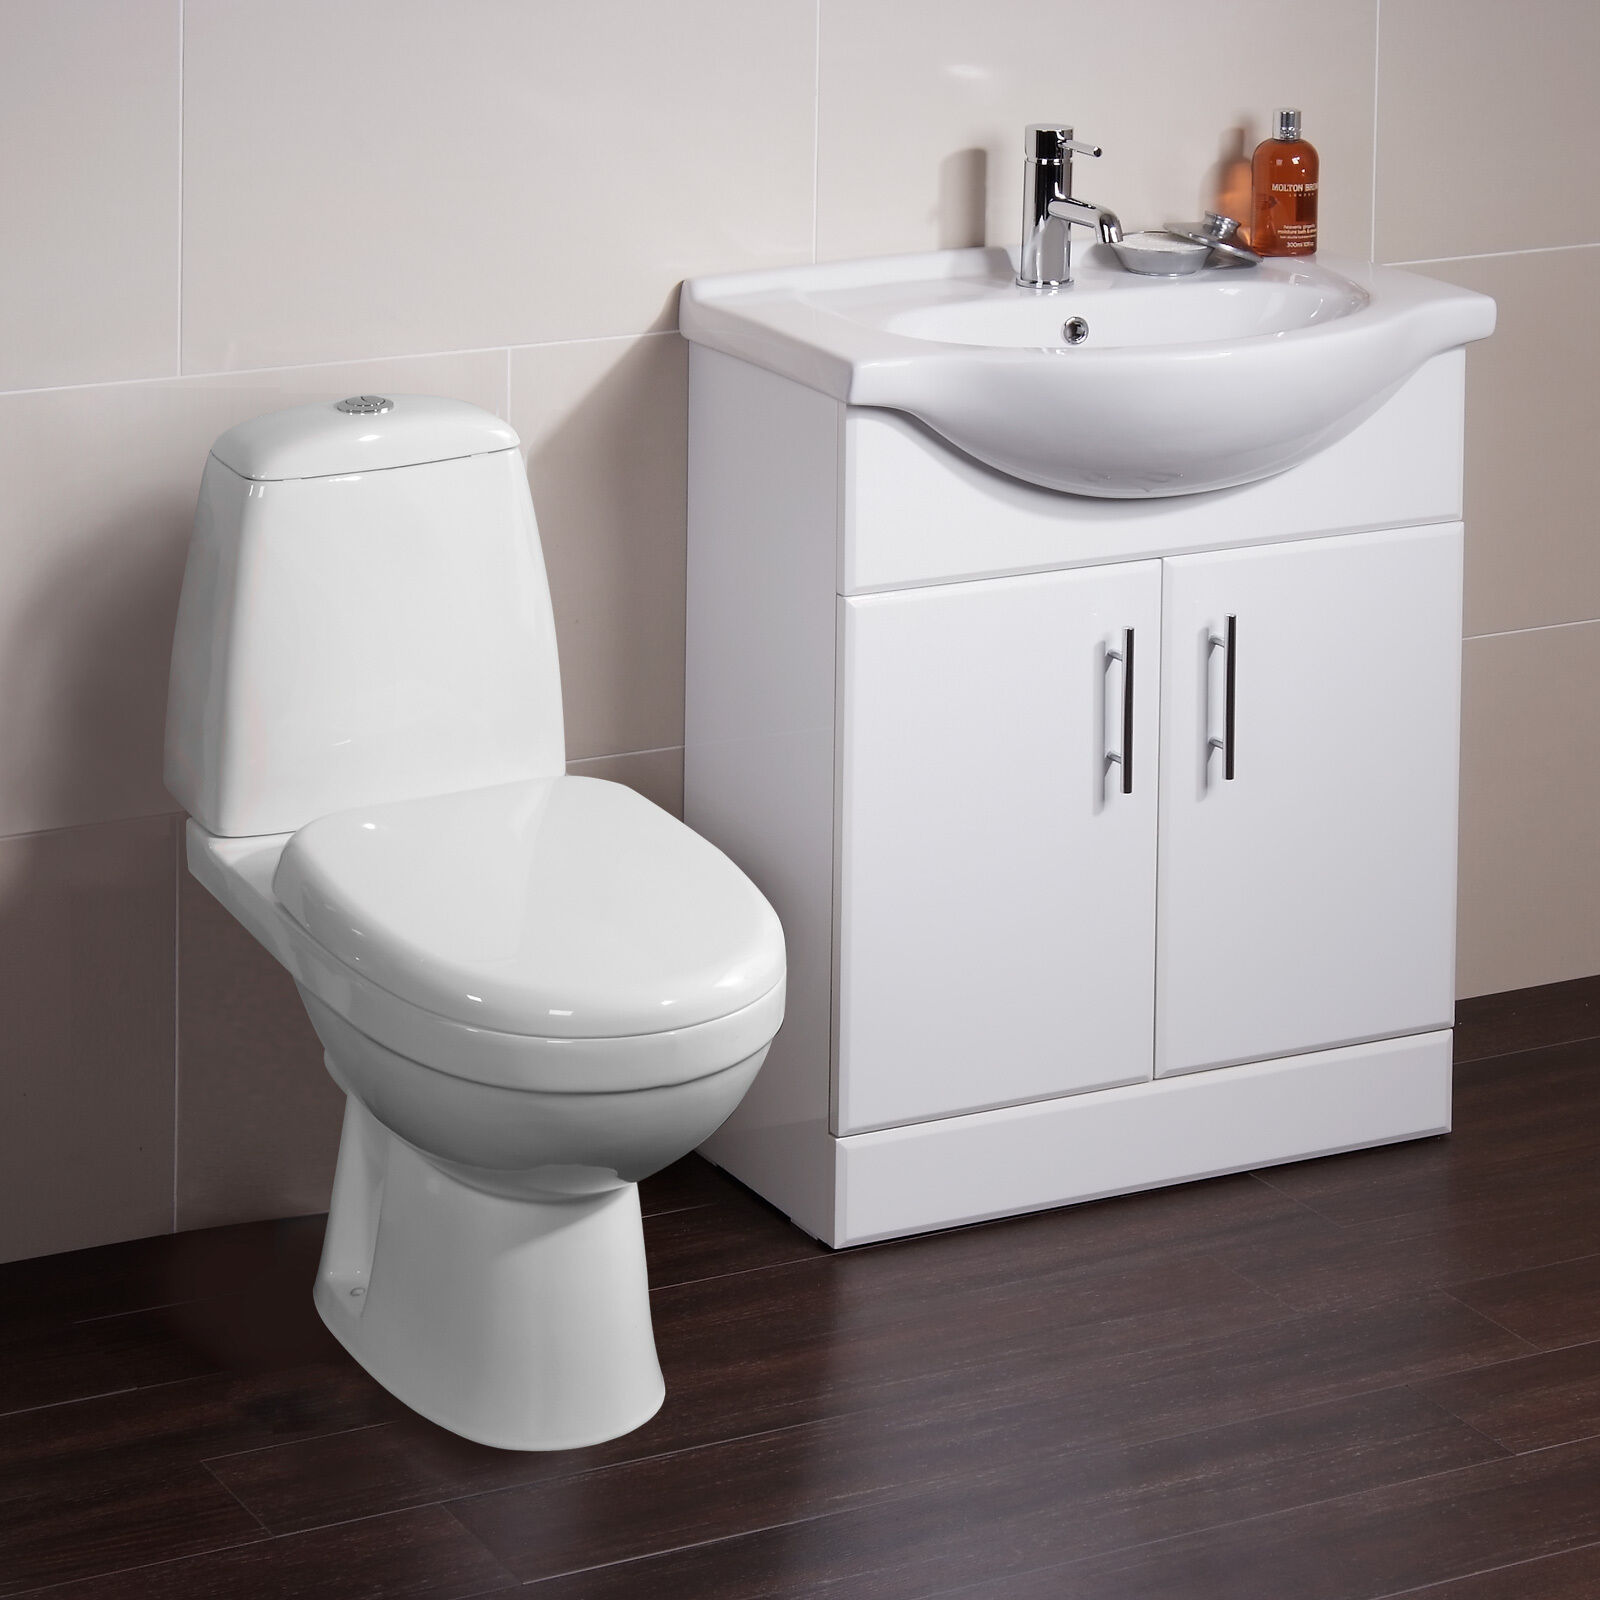 Toilet basin sink vanity unit bathroom cabinet furniture for Bathroom furniture drawers